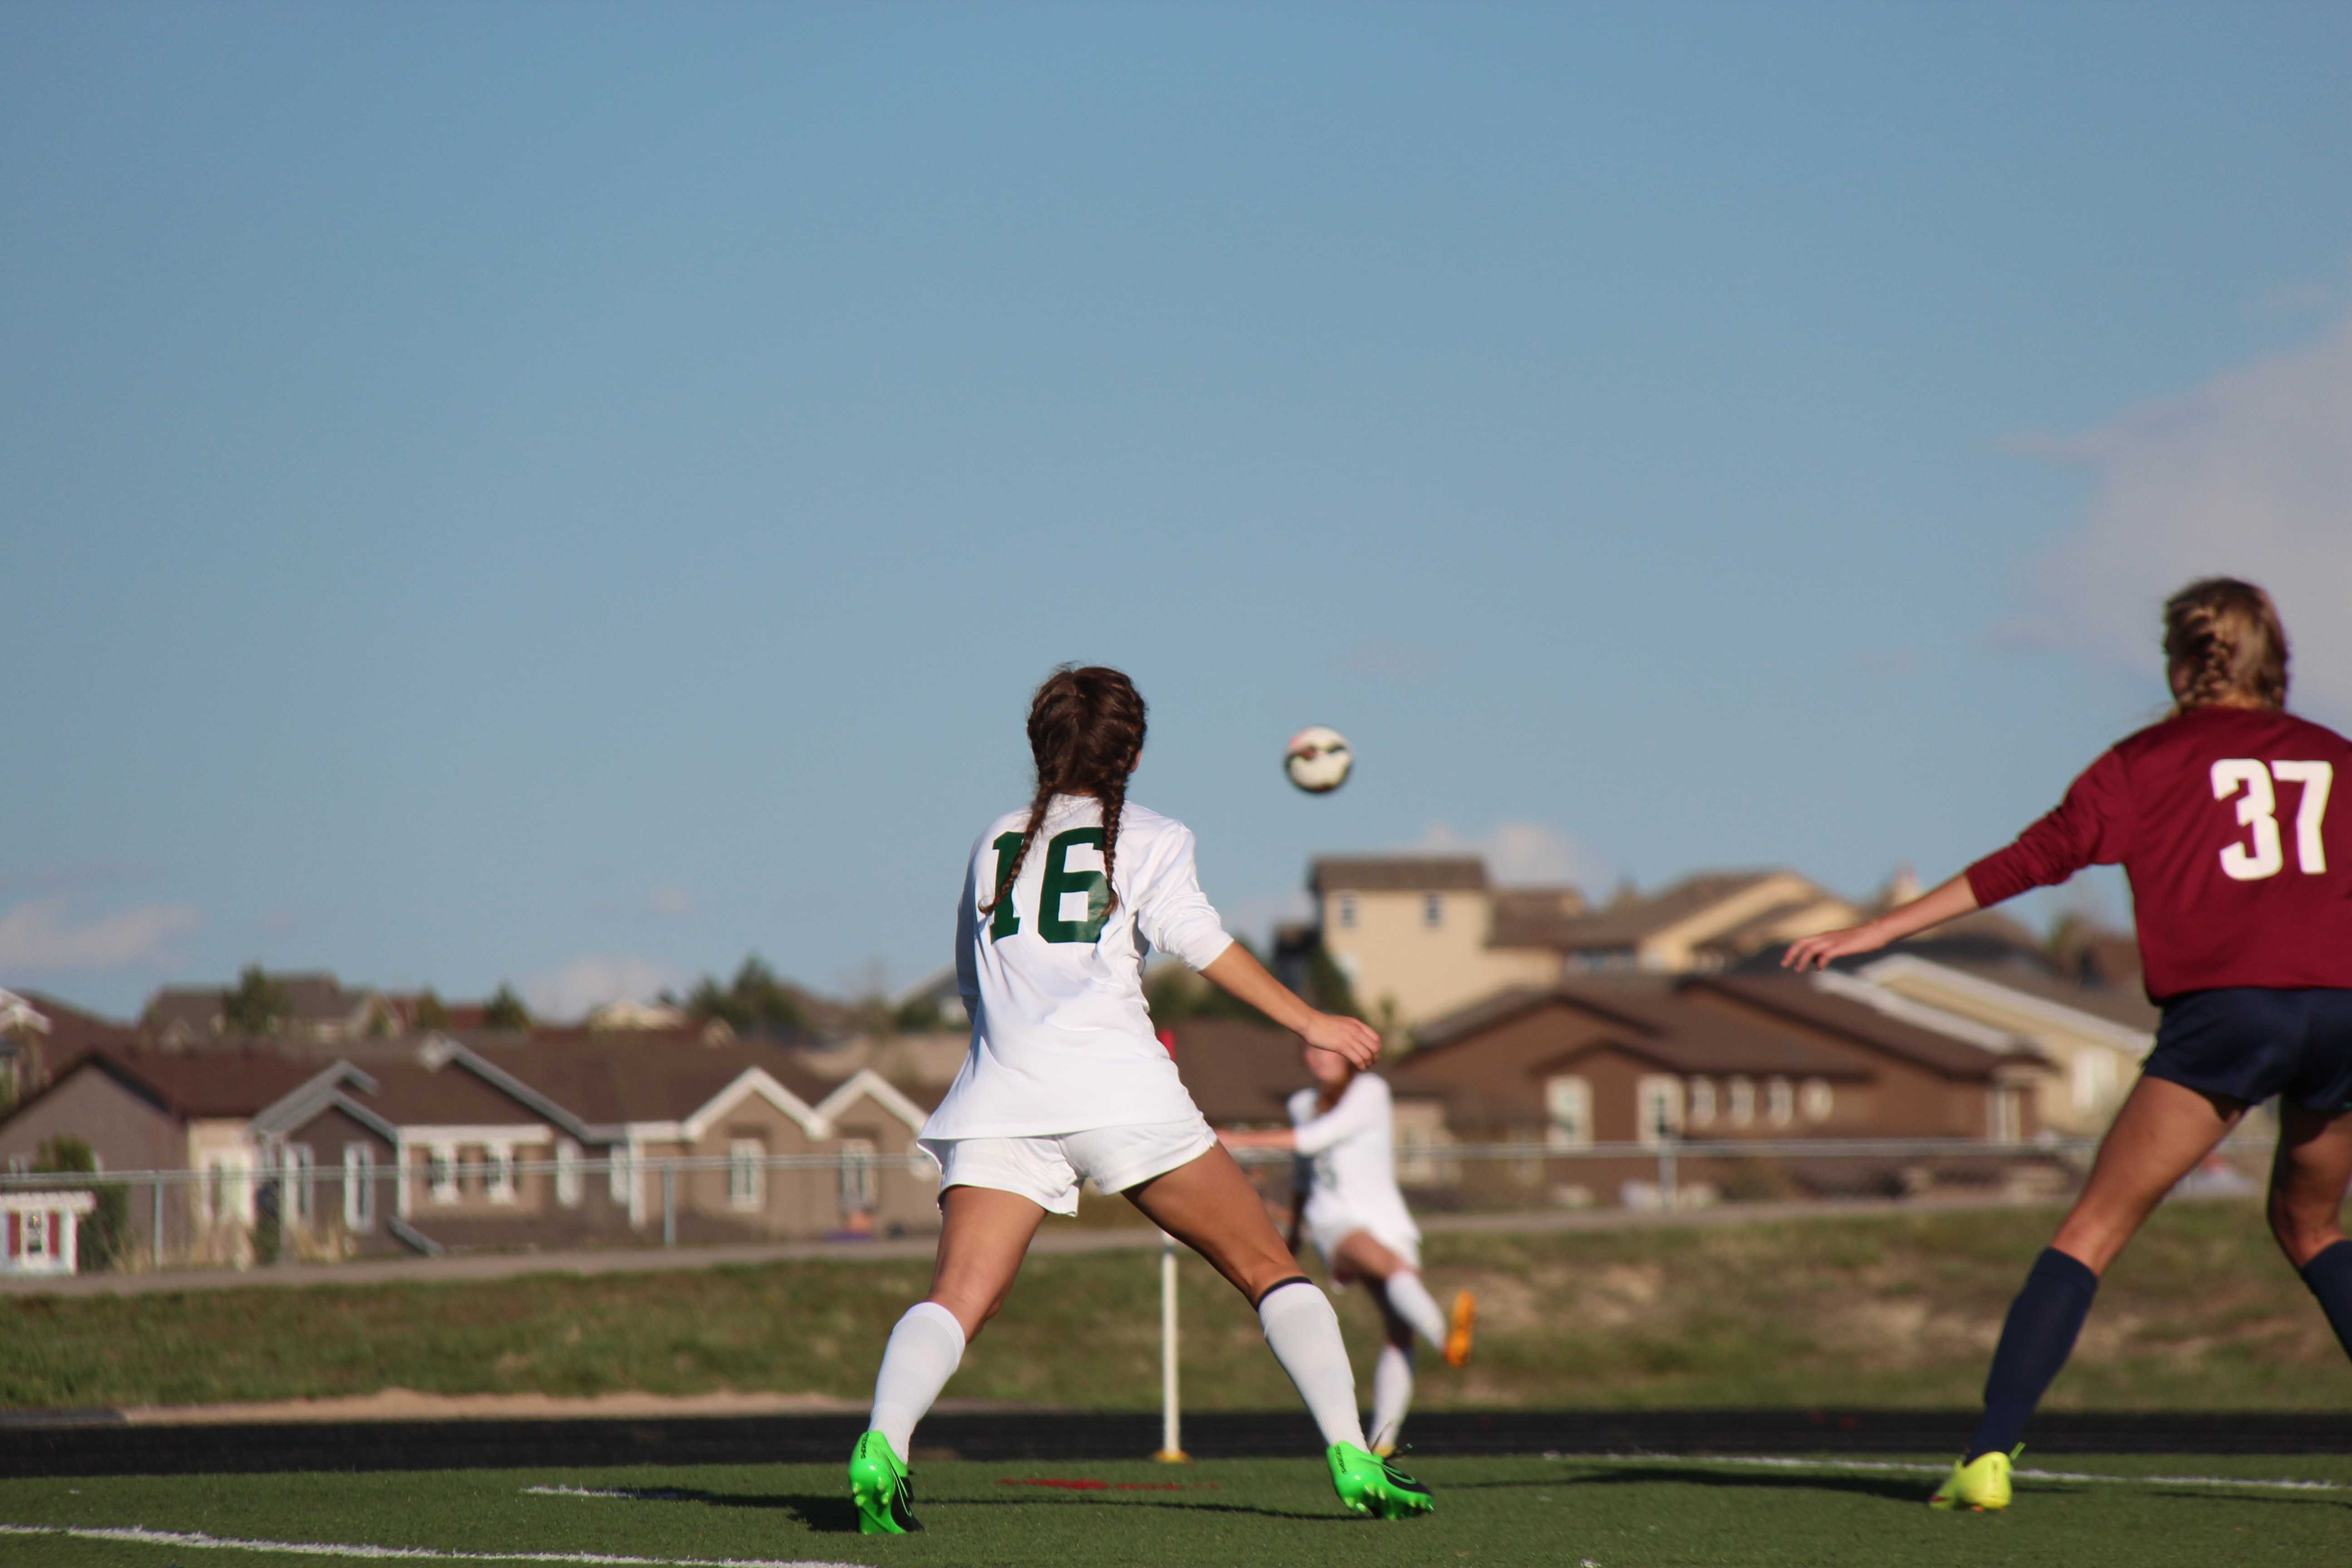 PHOTOS: Girls Soccer vs. Dakota Ridge